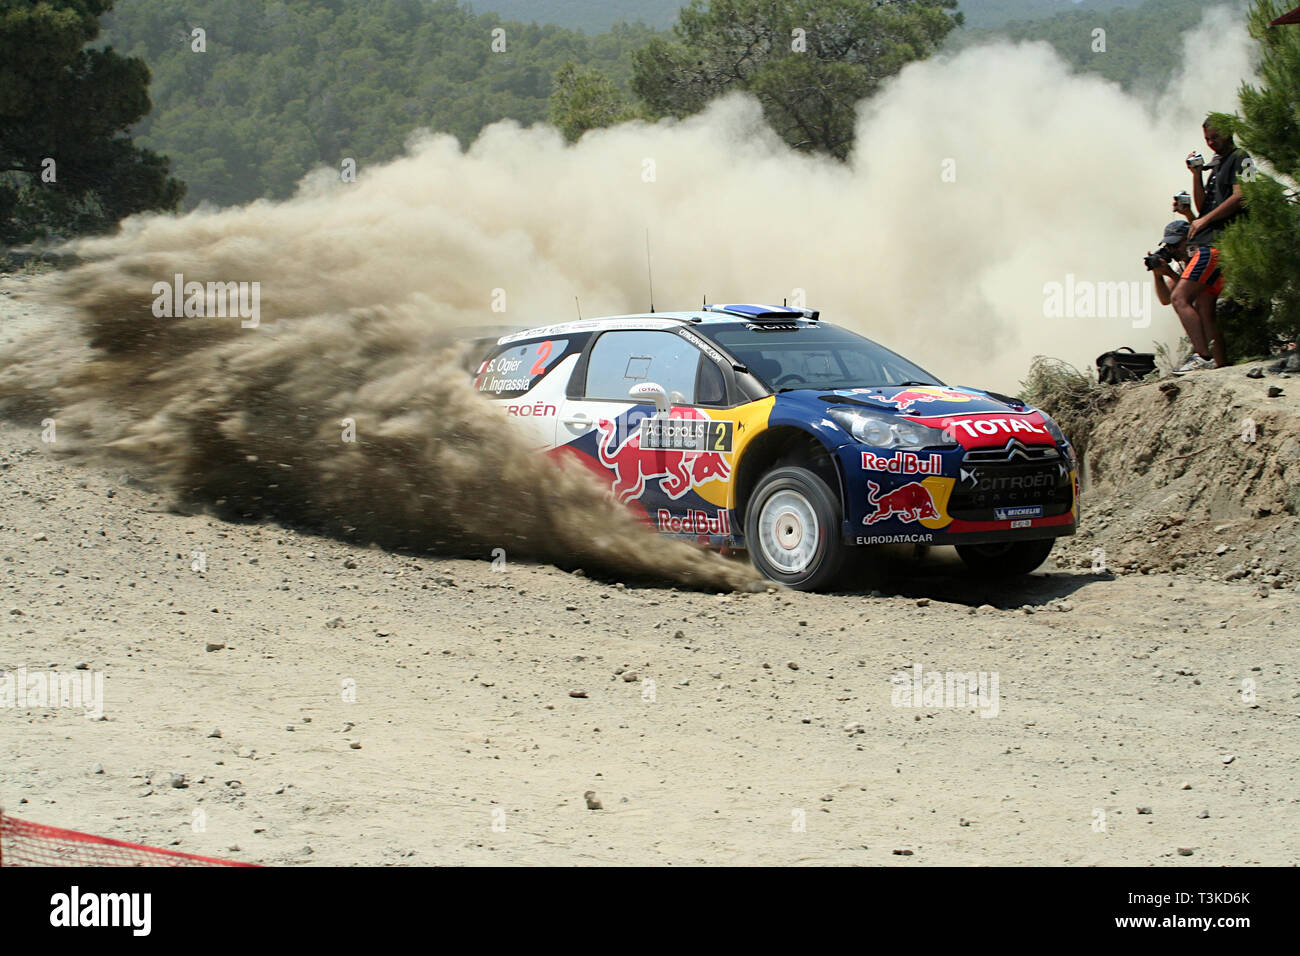 2011 Acropolis Rally, Special Stage 16 (Aghii Theodori 2). Sébastien Ogier - Julien Ingrassia, Citroën DS3 WRC (finished 1st) - Stock Image